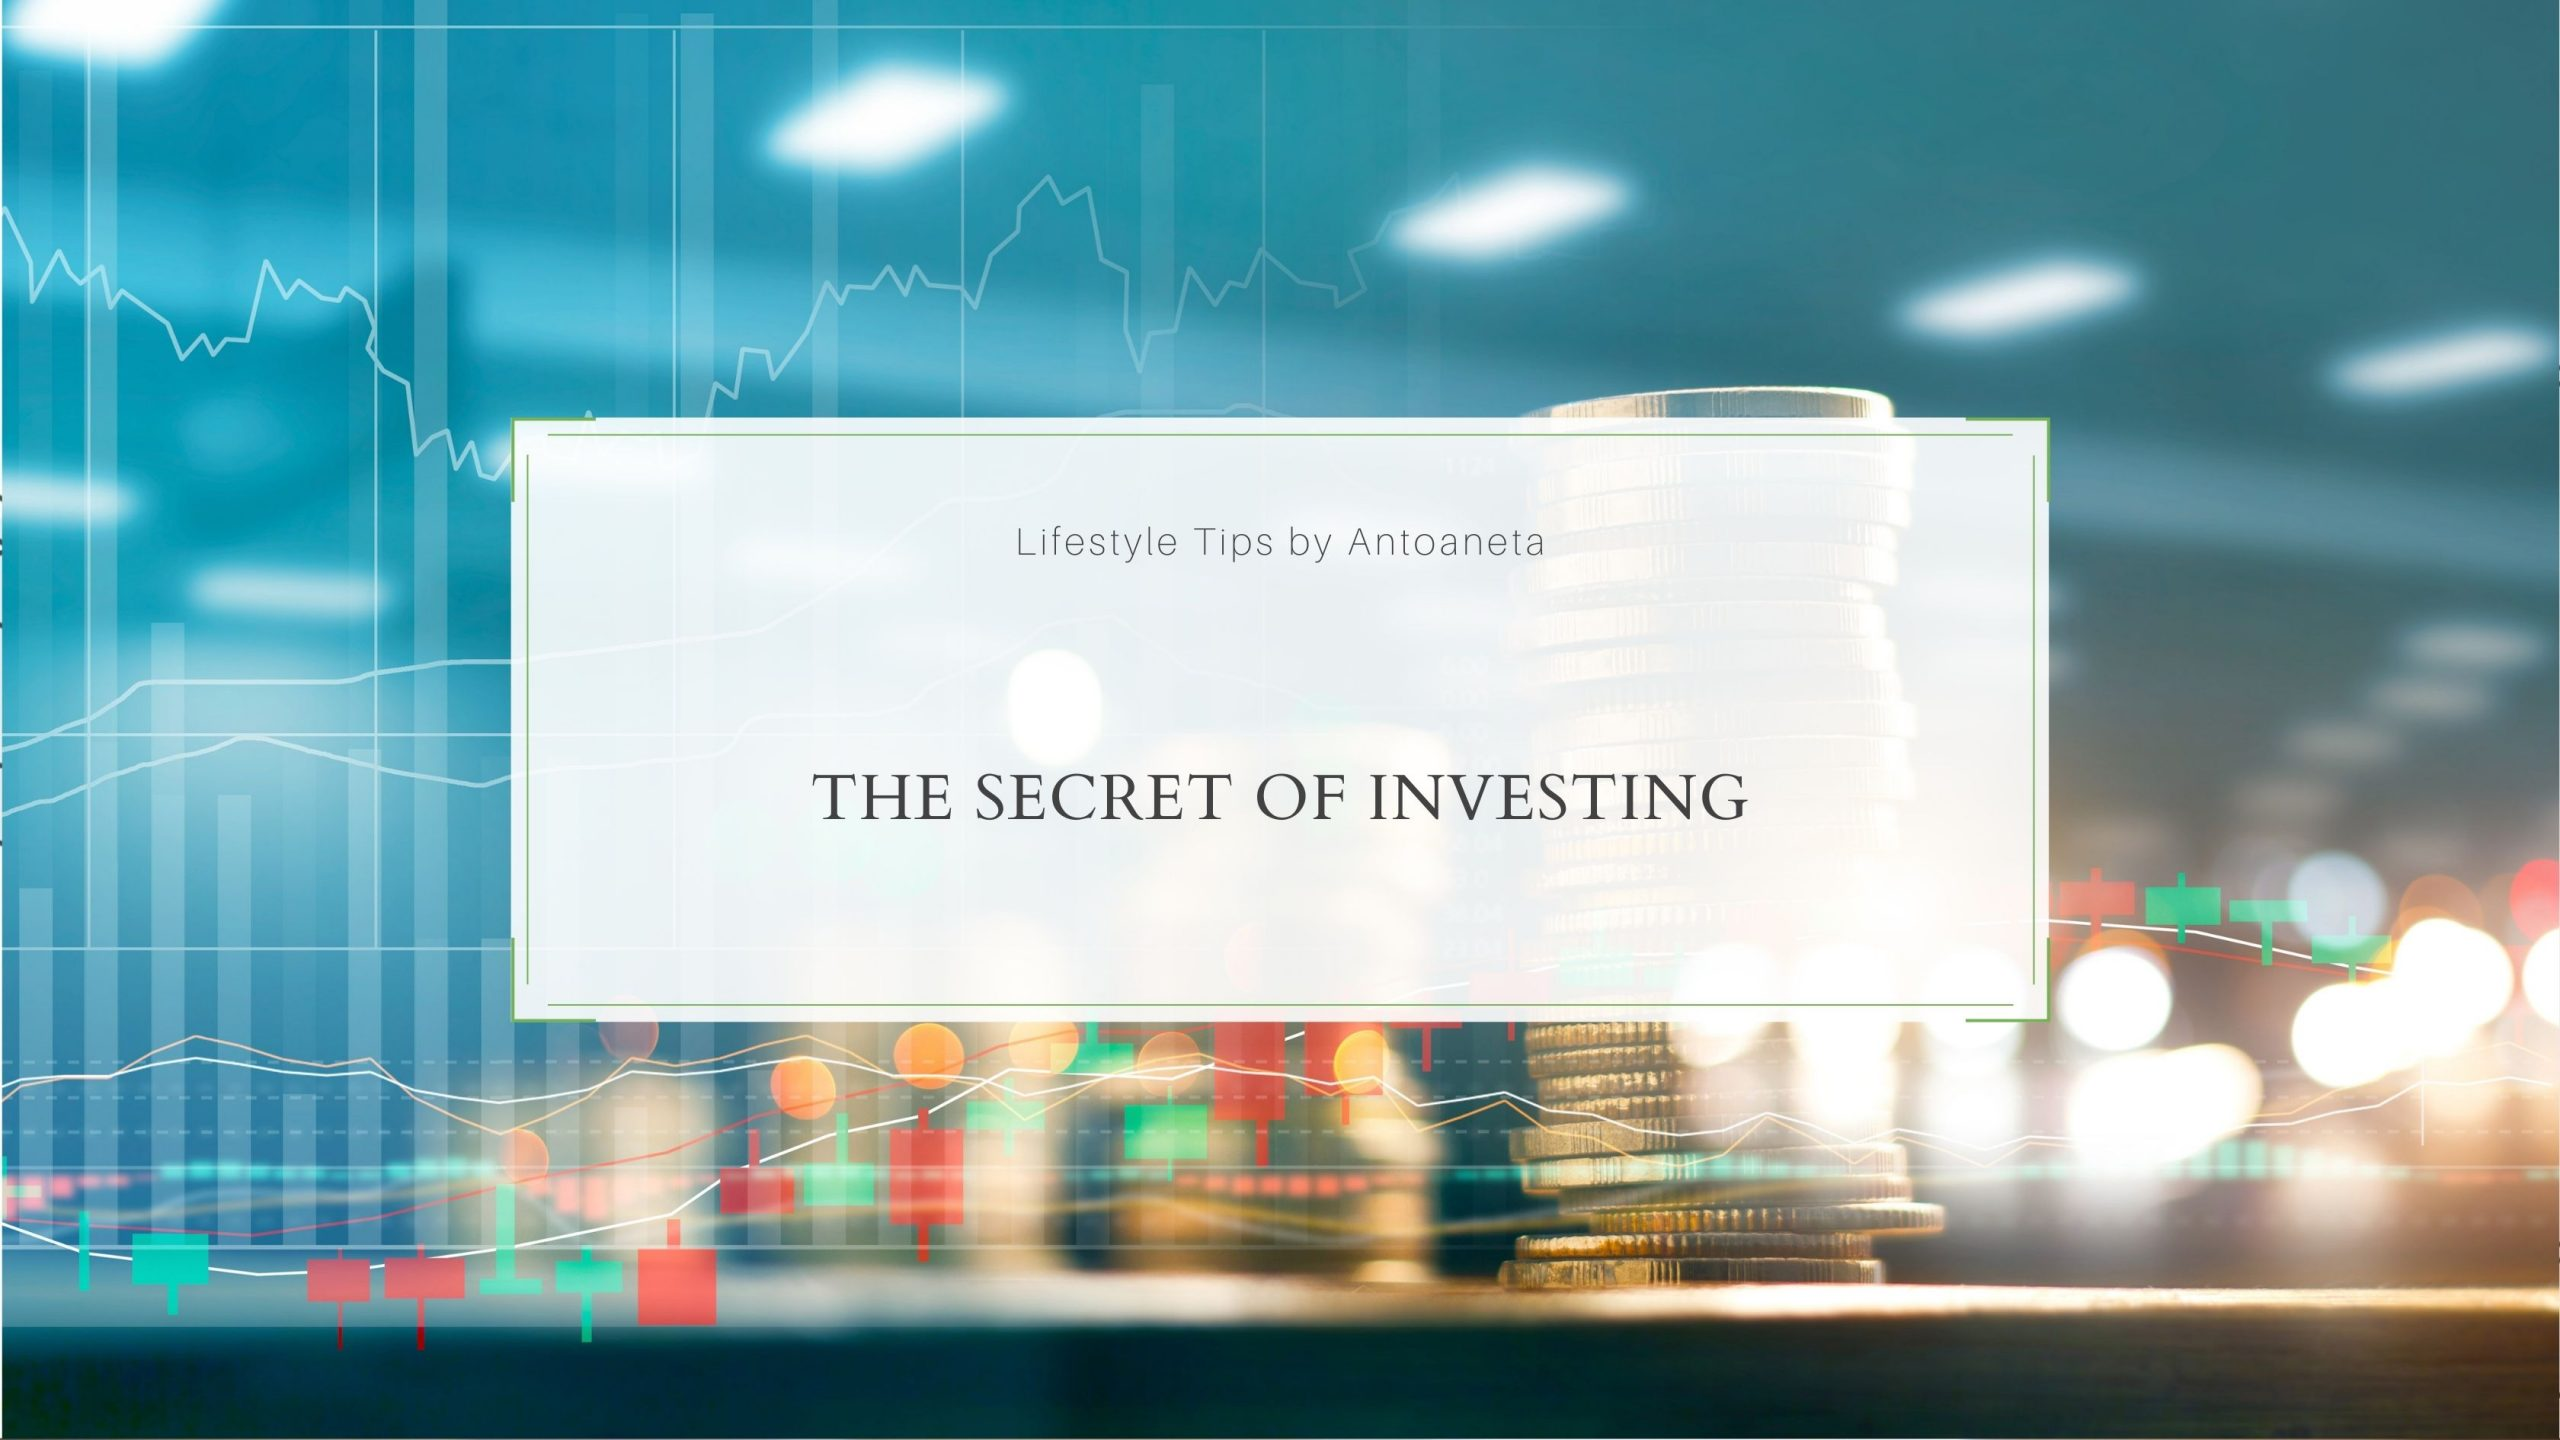 The Secret Of Investing